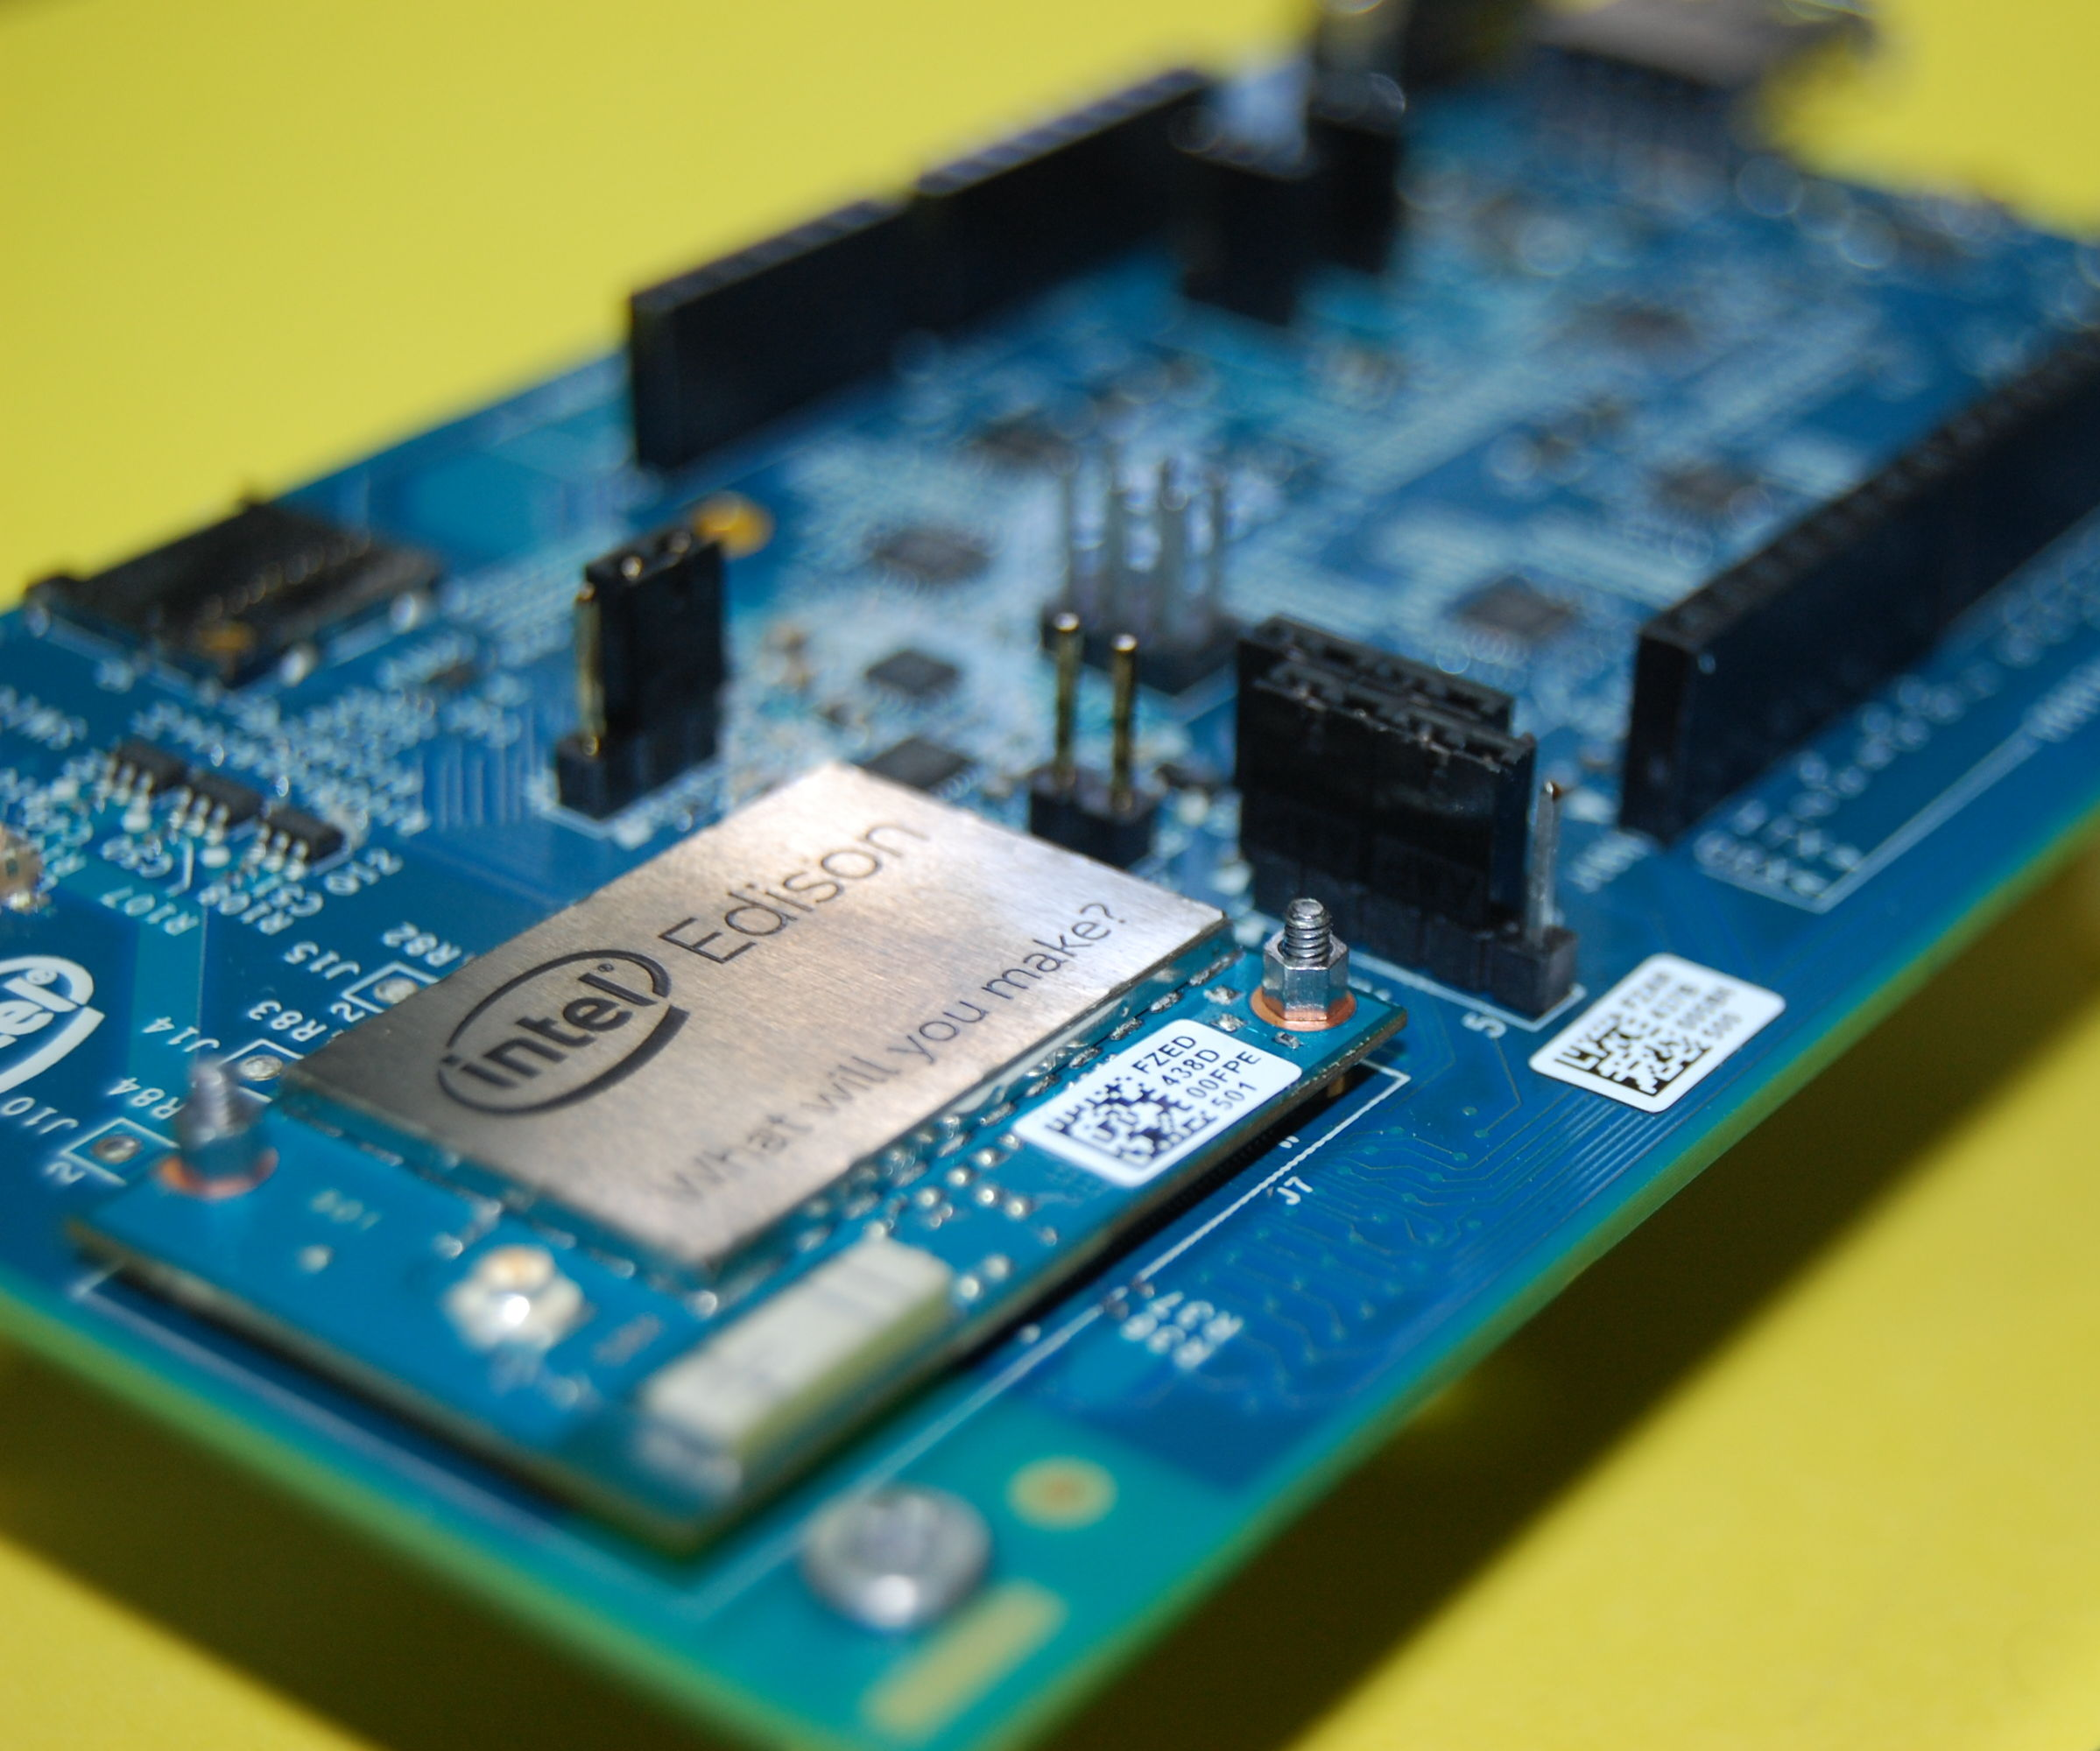 Fix an Intel Edison with a Corrupted Linux Image